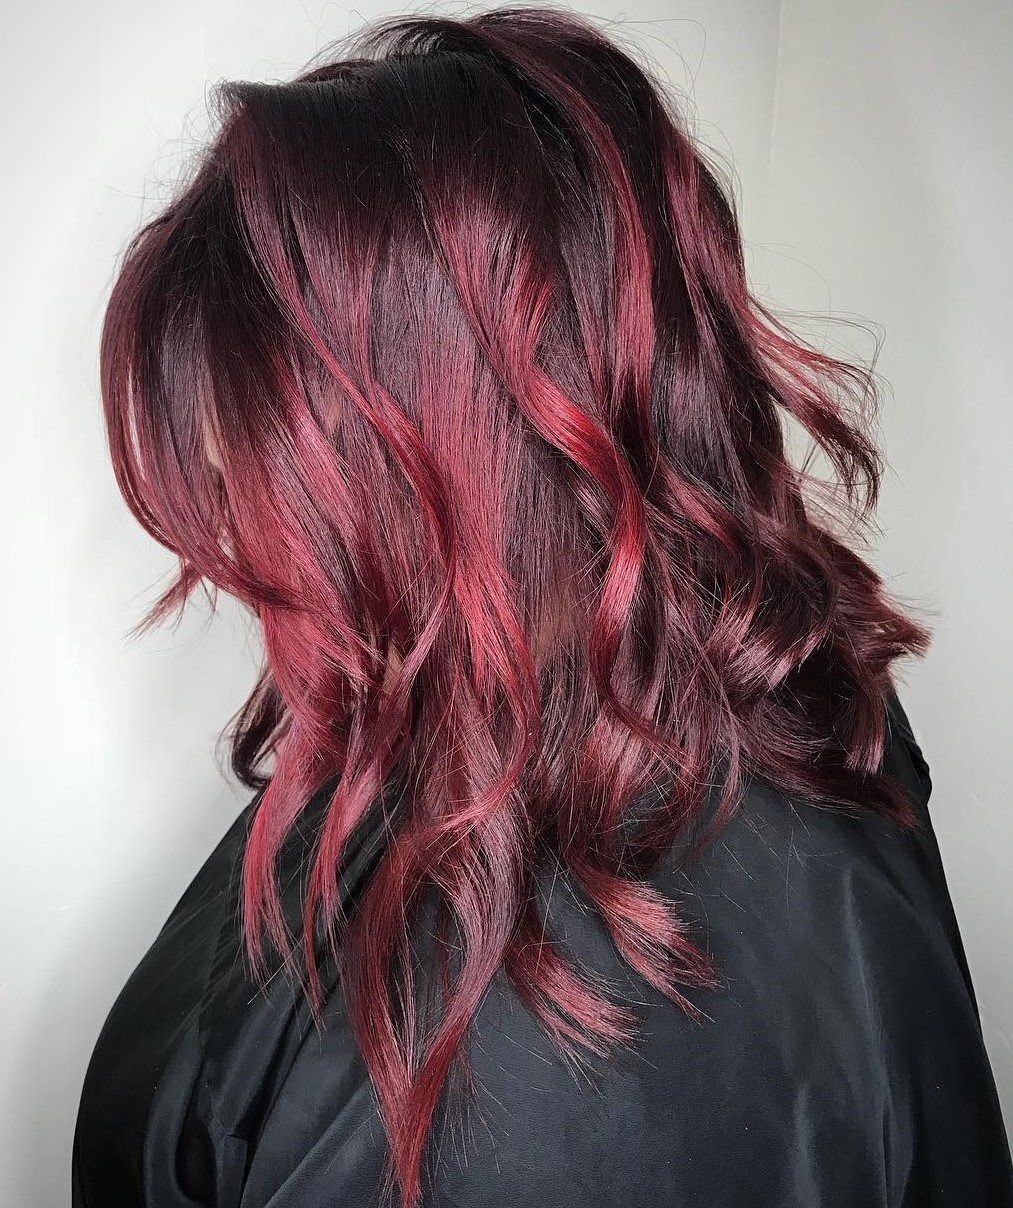 Dark Hair with Bright Burgundy Highlights